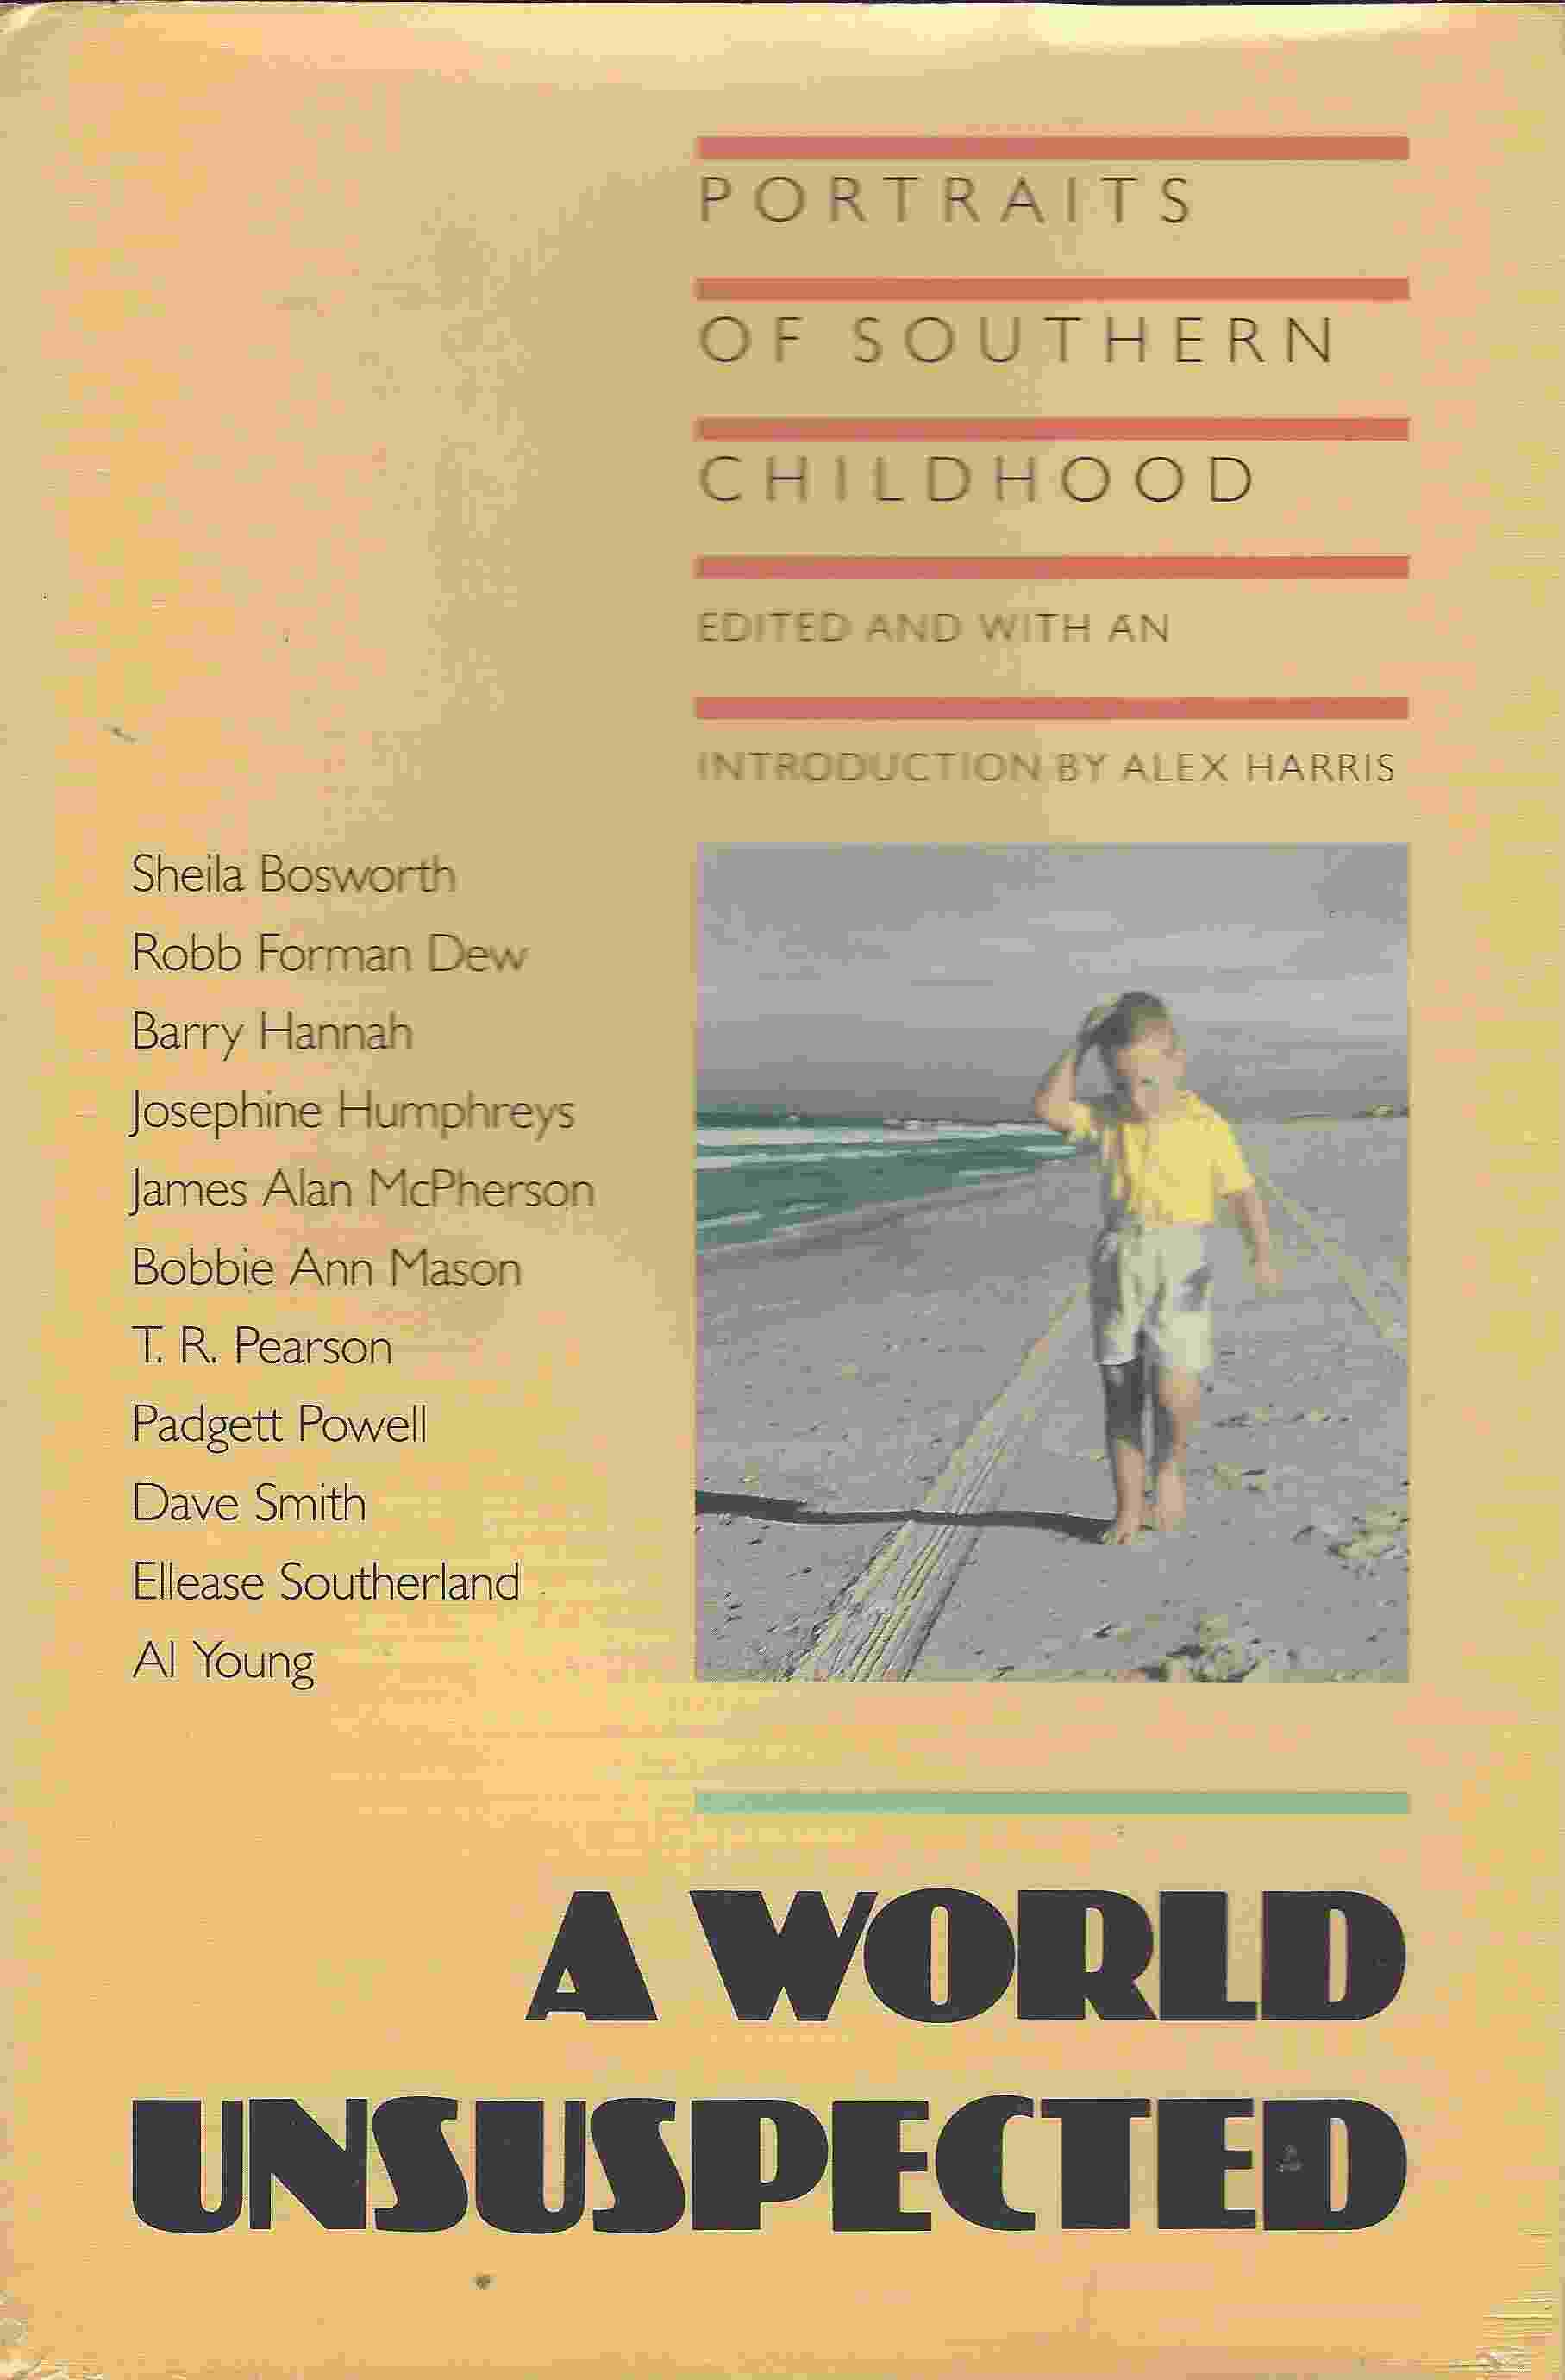 Image for A WORLD UNSUSPECTED  Portraits of Southern Childhood